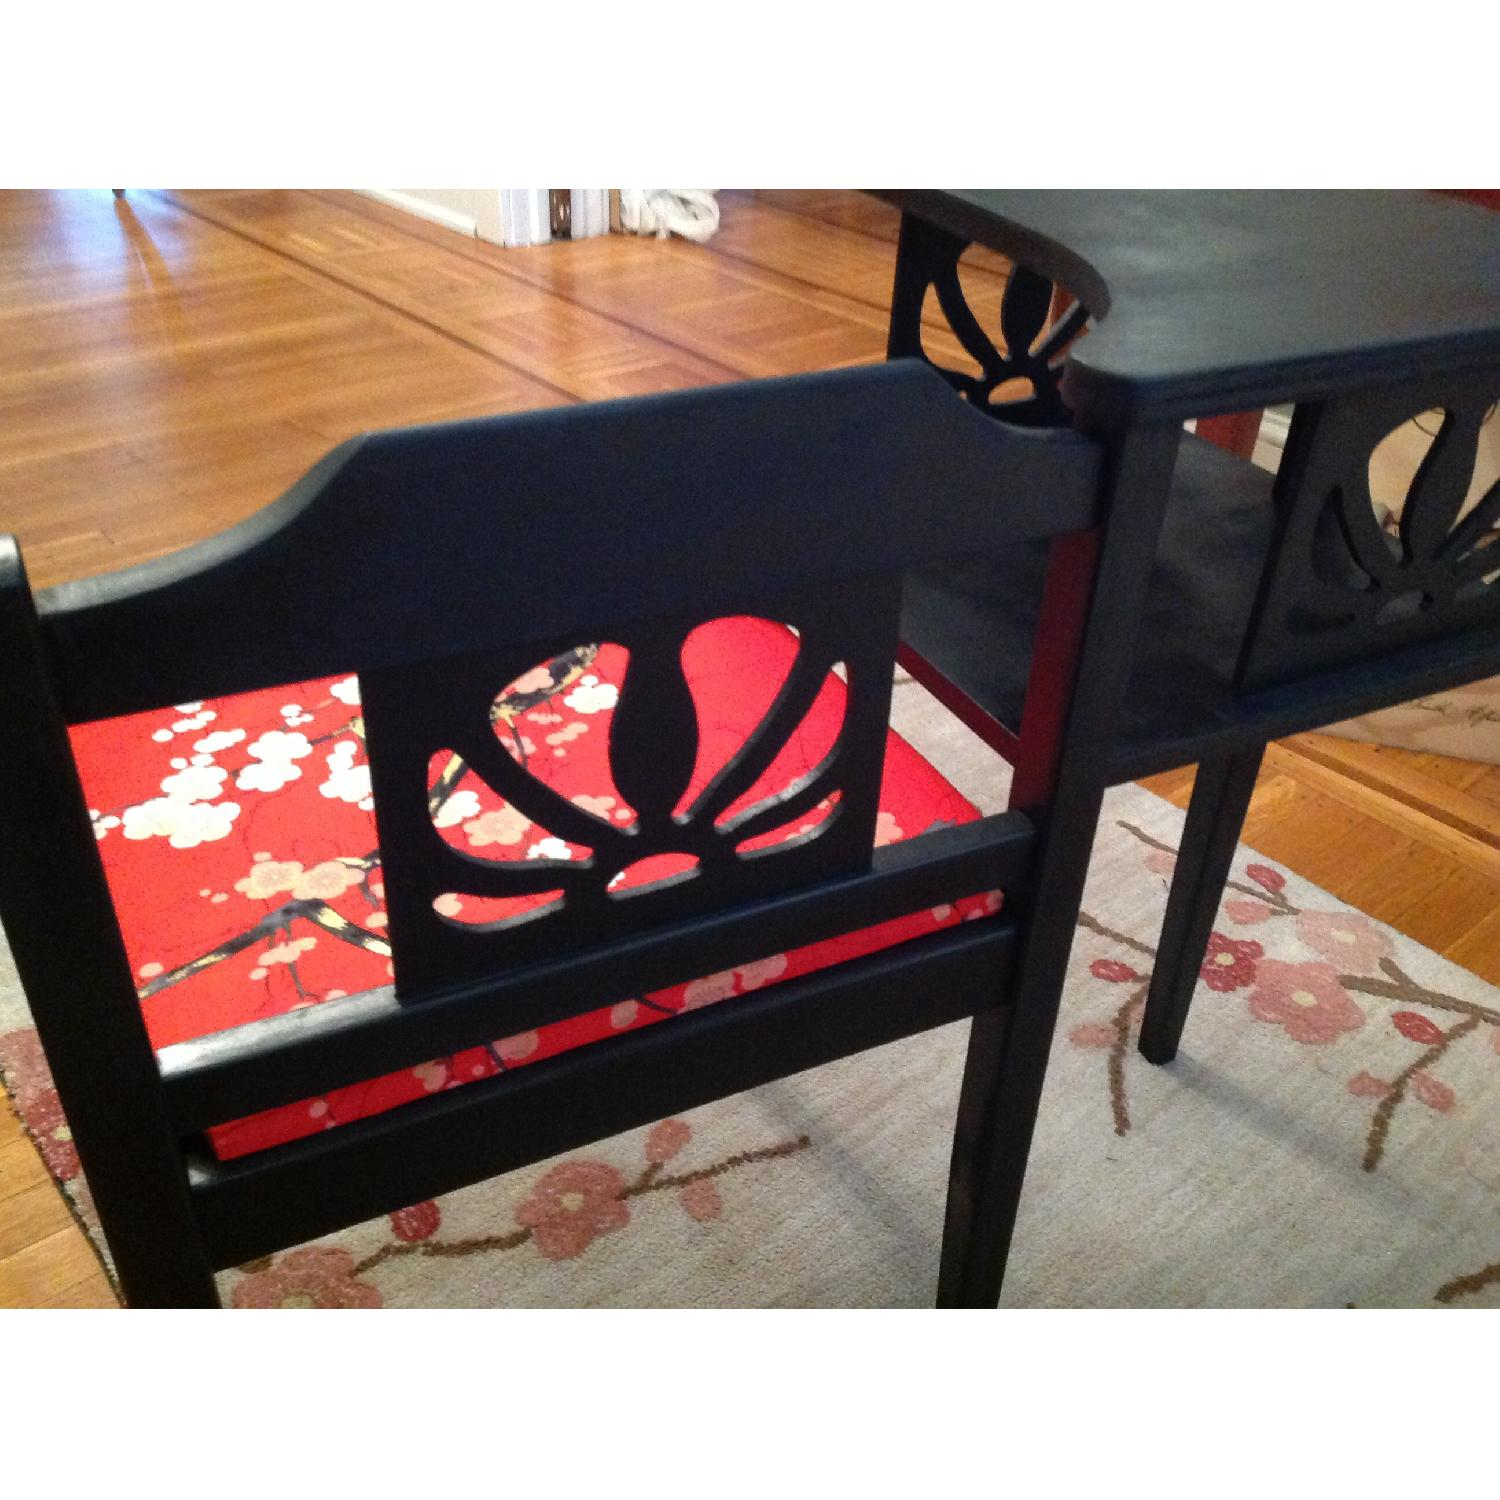 Upcycled Vintage Telephone Gossip Table/Chair - Hot Pink/Red Cherry Blossom Fabric - image-3